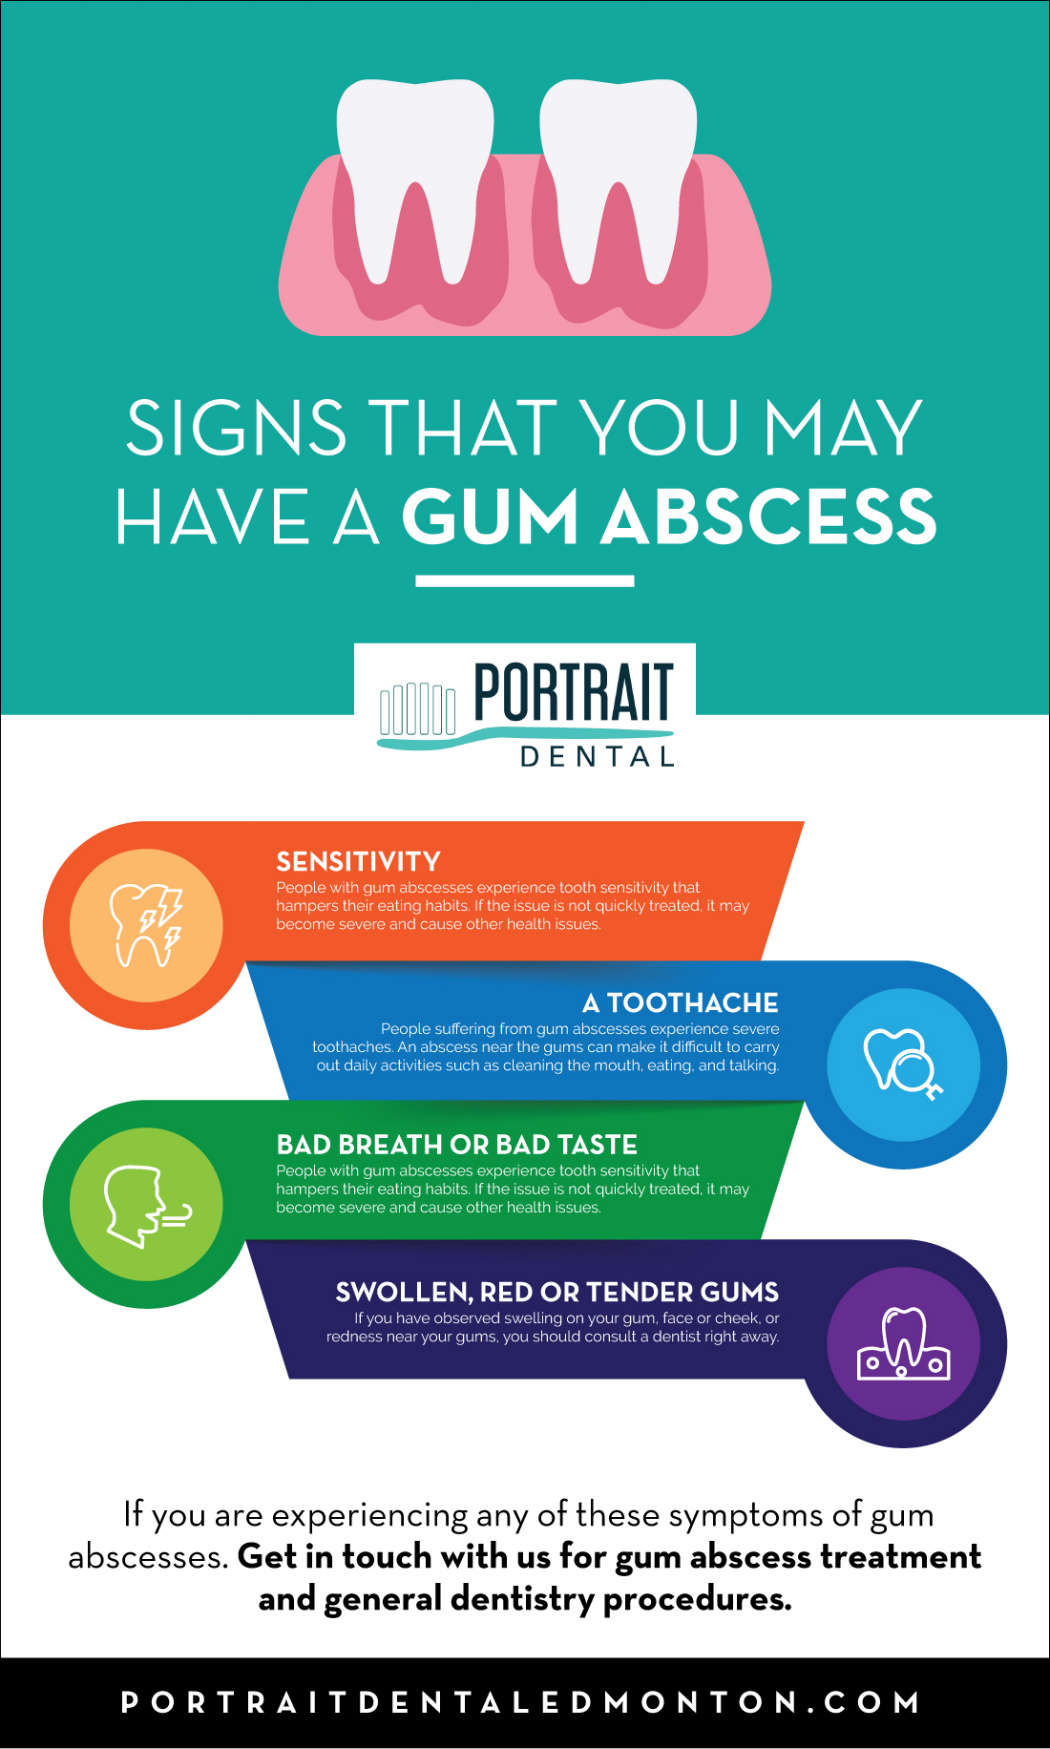 Signs That You May Have A Gum Abscess